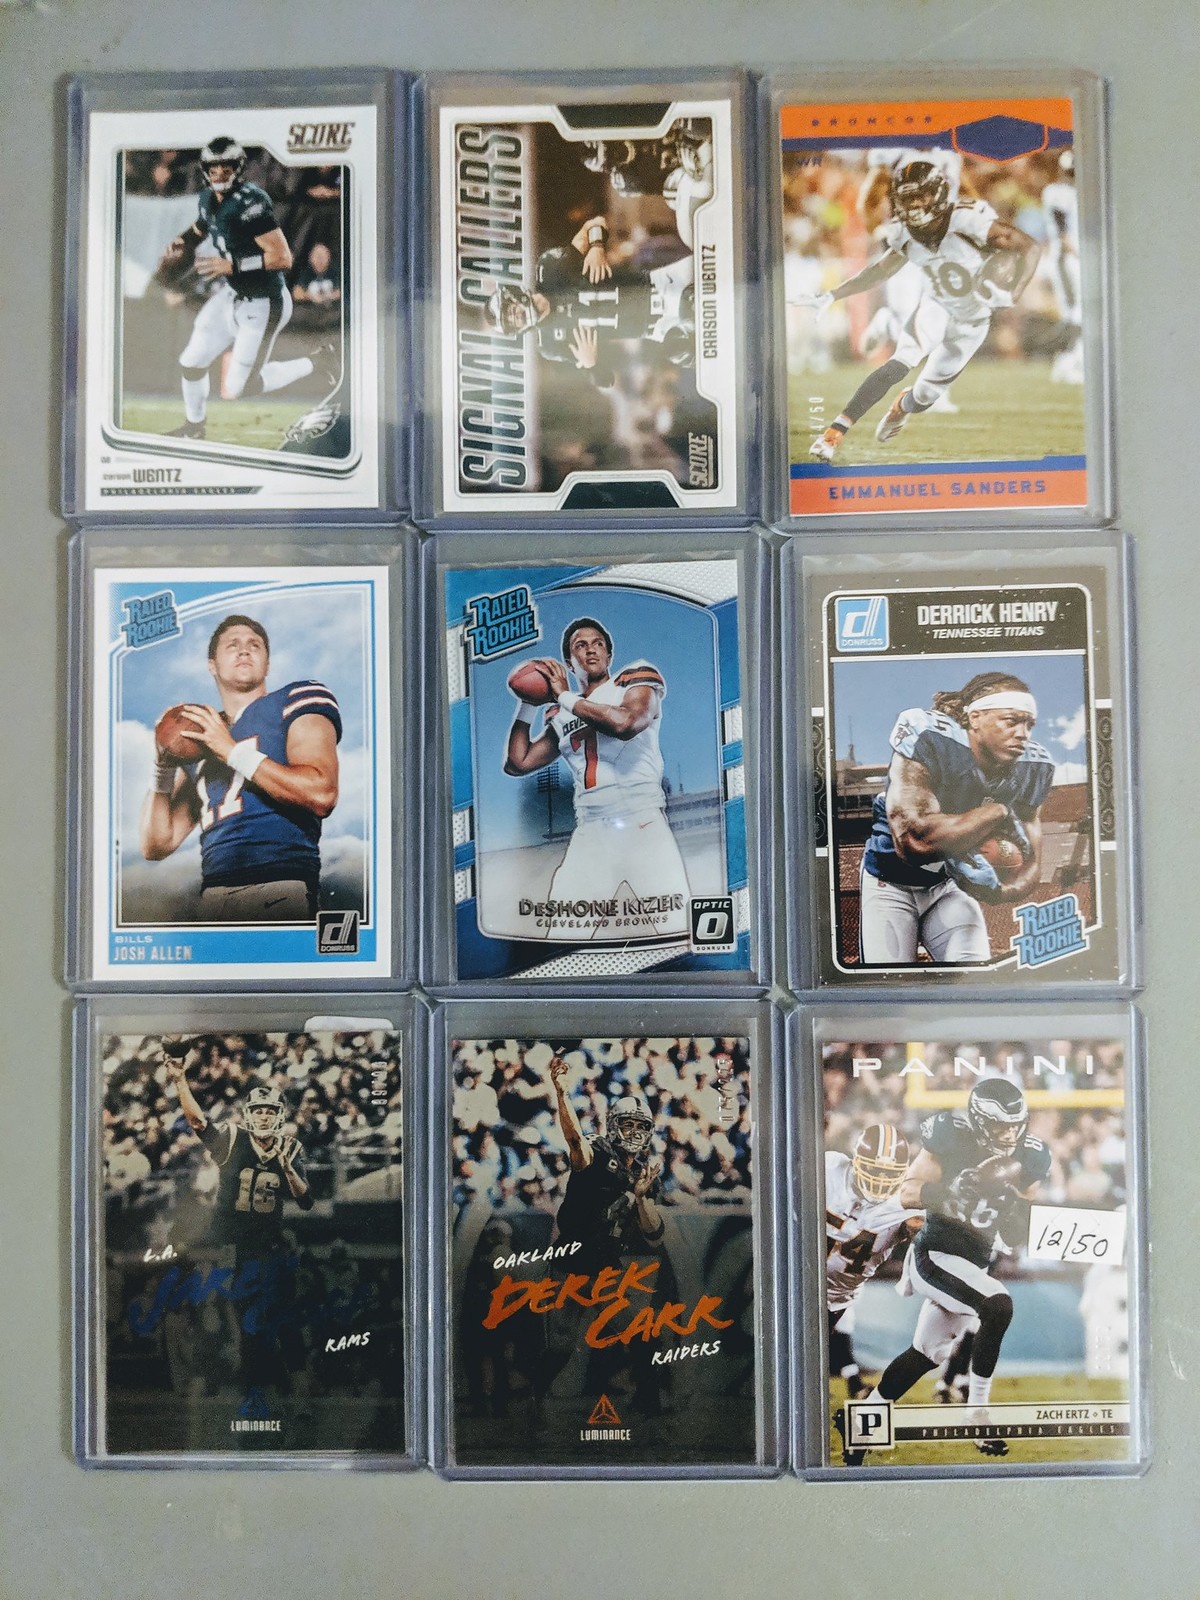 39c501af FS 400+ Inserts SPs Autos Relics $.25 and up! - Blowout Cards Forums